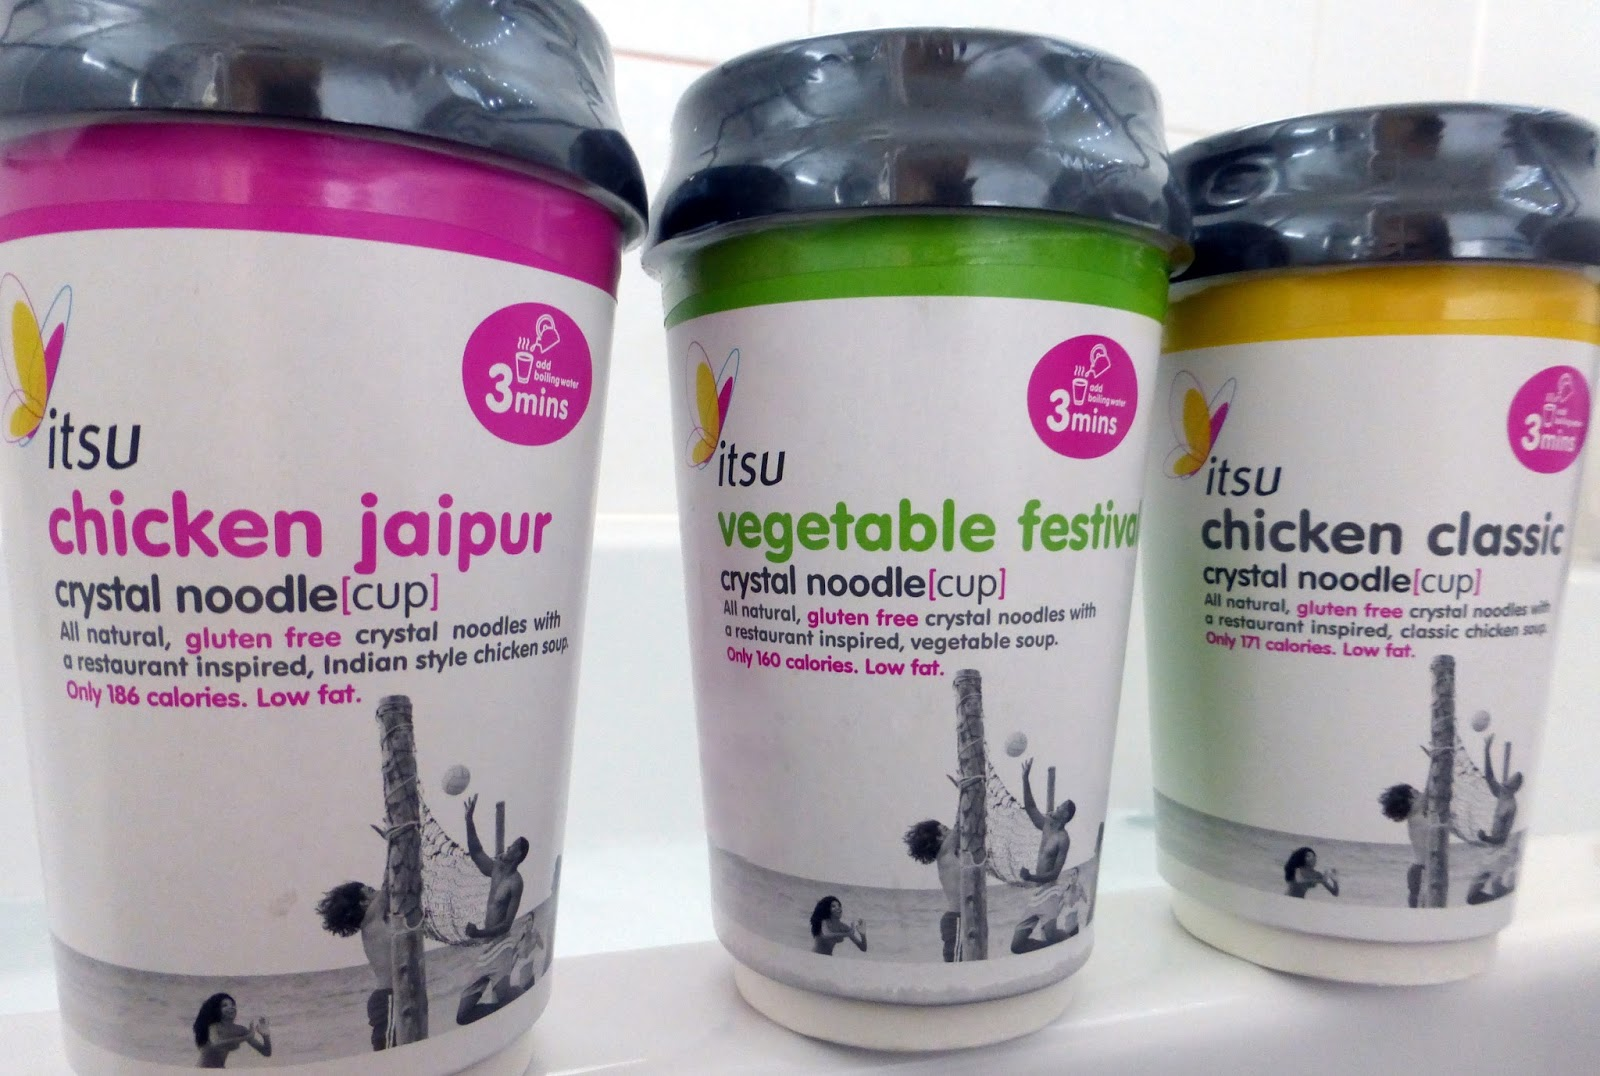 Itsu's New Crystal Noodle Cups